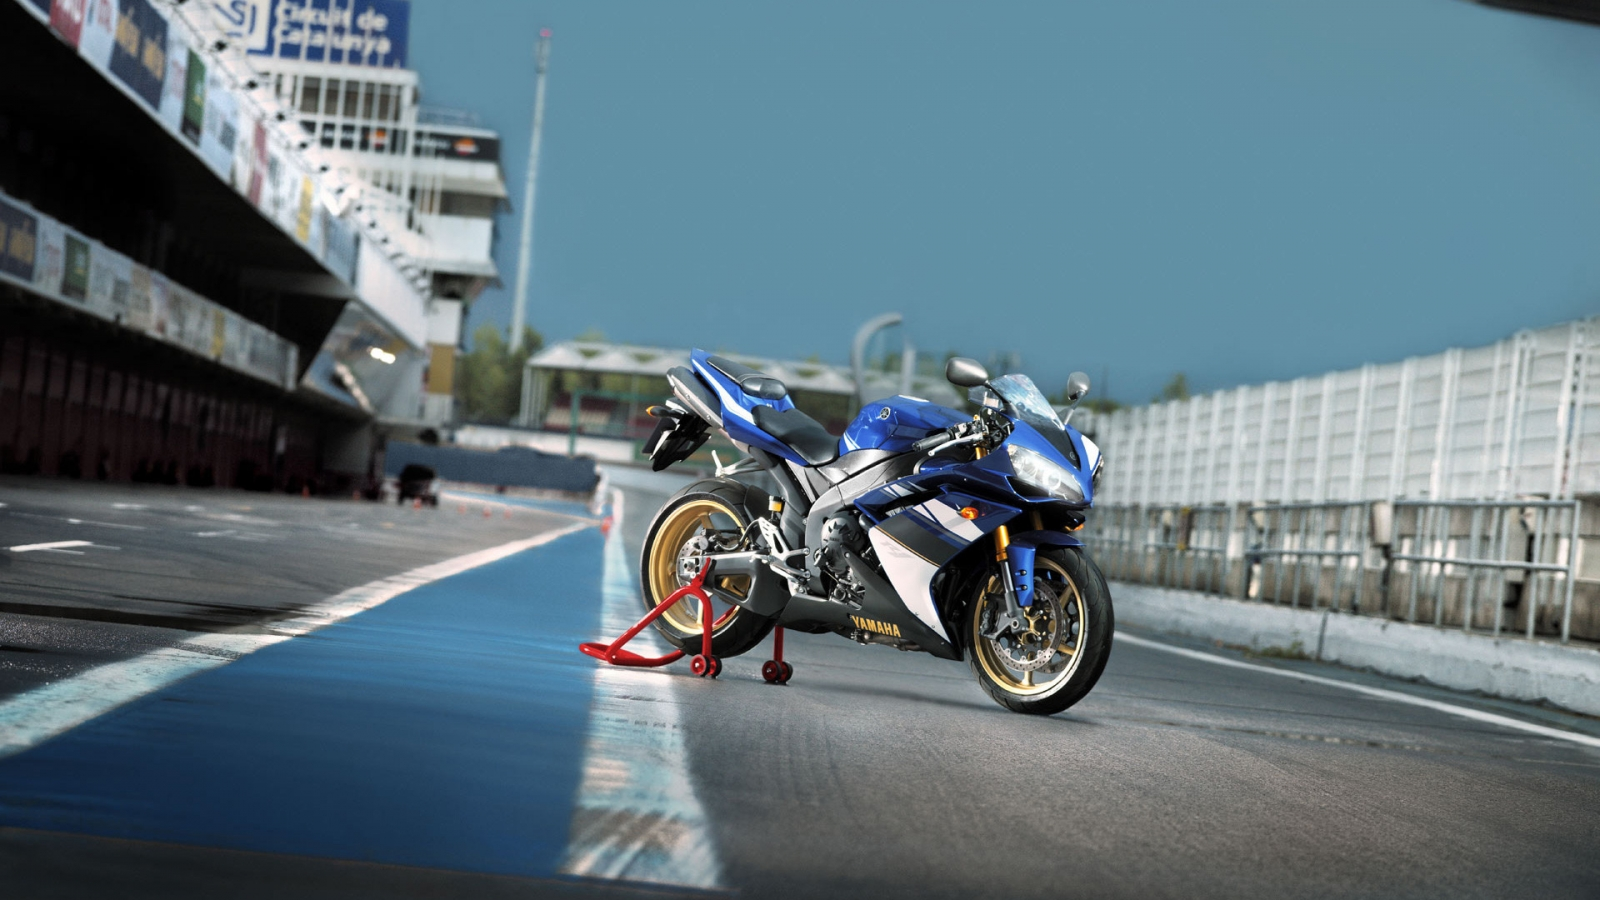 Yamaha YZF-R1 for 1600 x 900 HDTV resolution